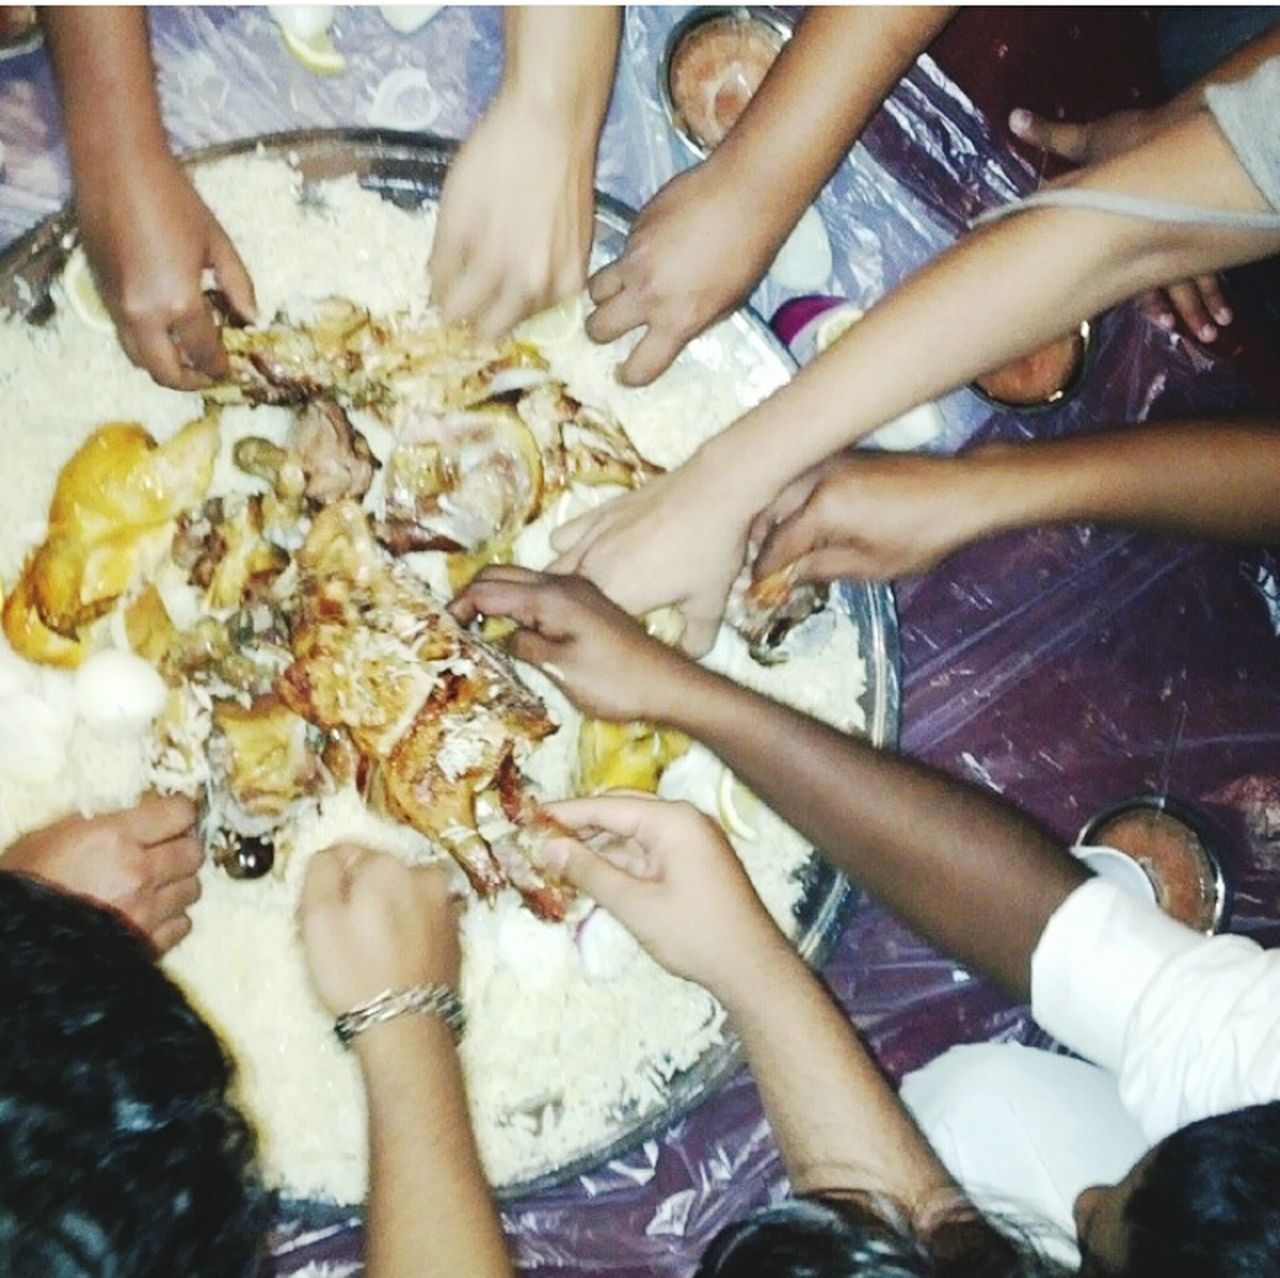 human hand, human body part, togetherness, real people, food and drink, lifestyles, fun, leisure activity, women, food, outdoors, friendship, day, group of people, low section, men, close-up, people, adult